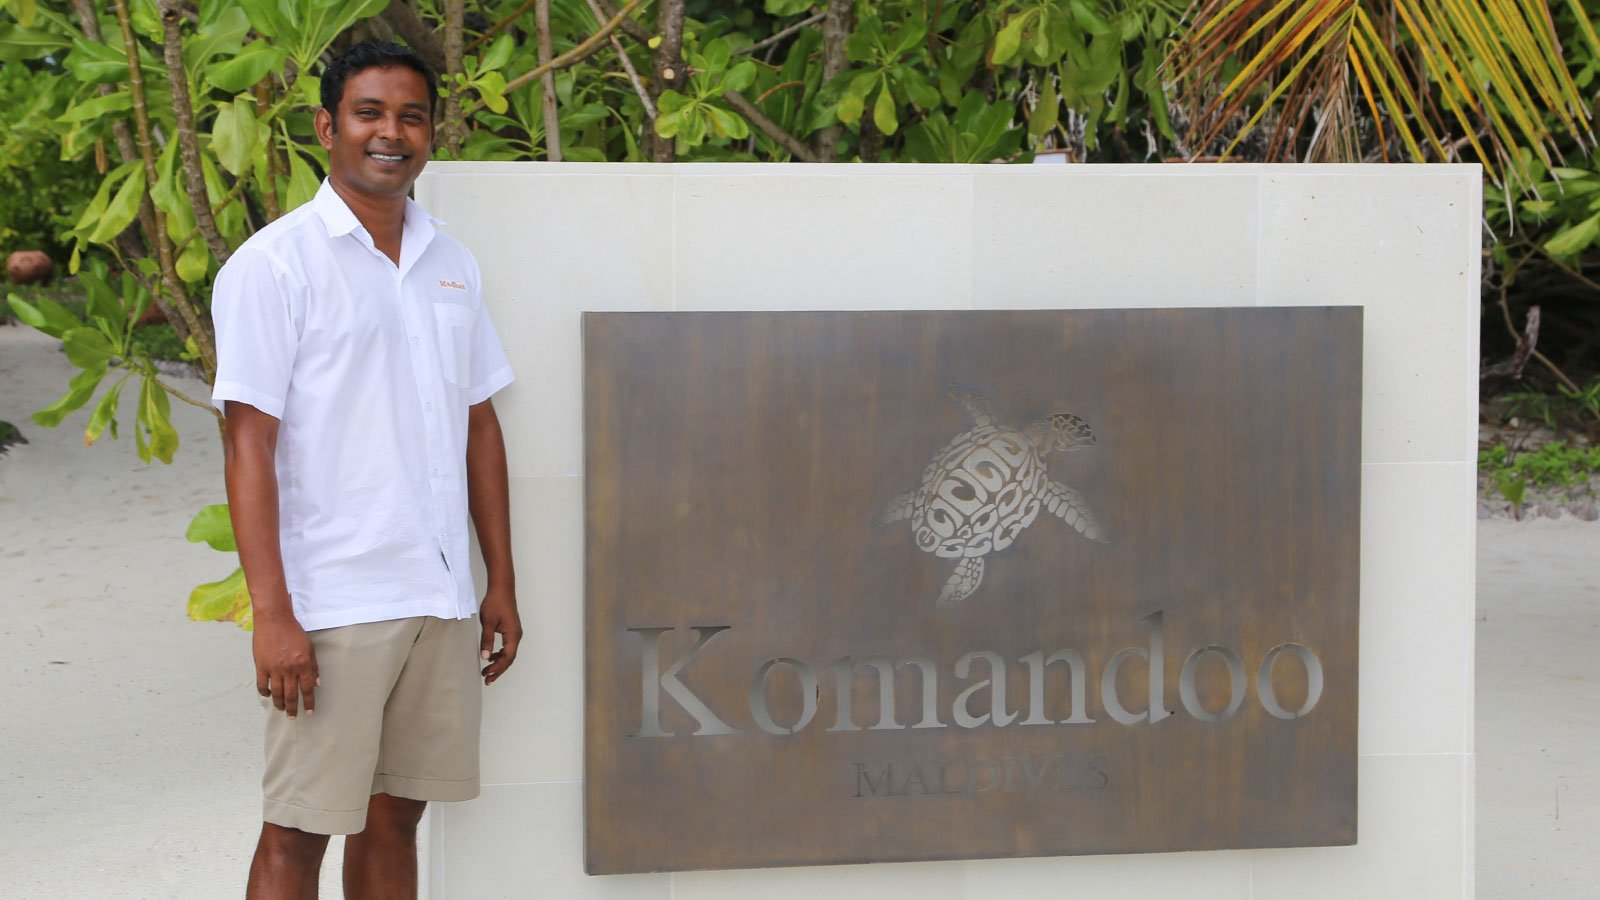 Madhah Komandoo Maldives Resort